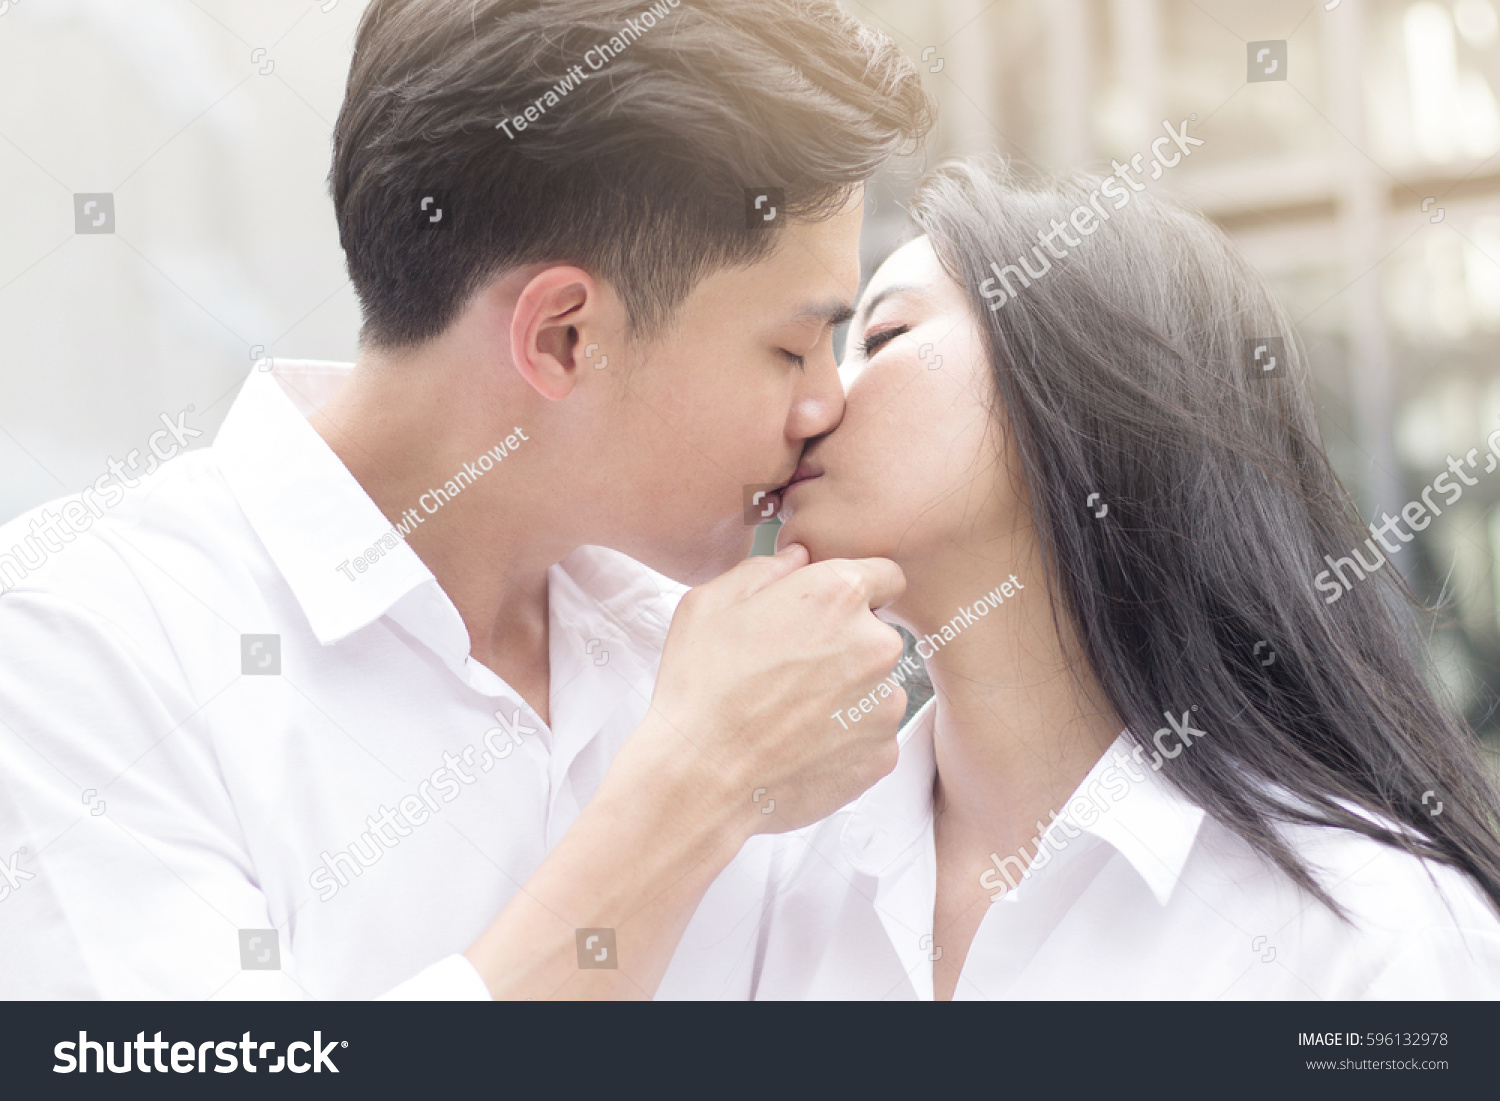 story-fem-white-boy-kissing-asian-girl